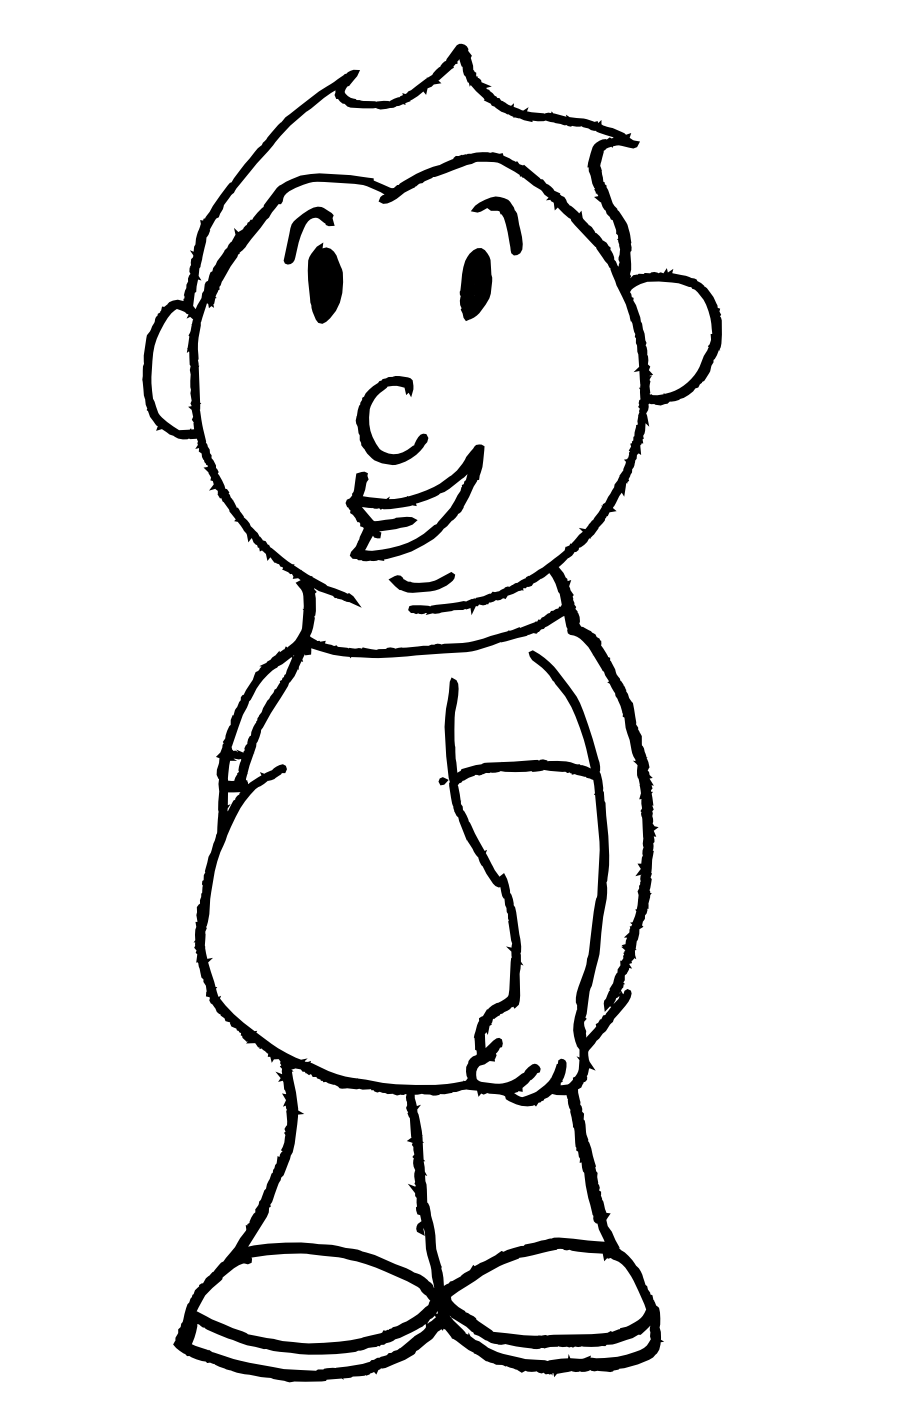 easy to draw characters smelly finger salute drawing a simple cartoon character easy characters to draw